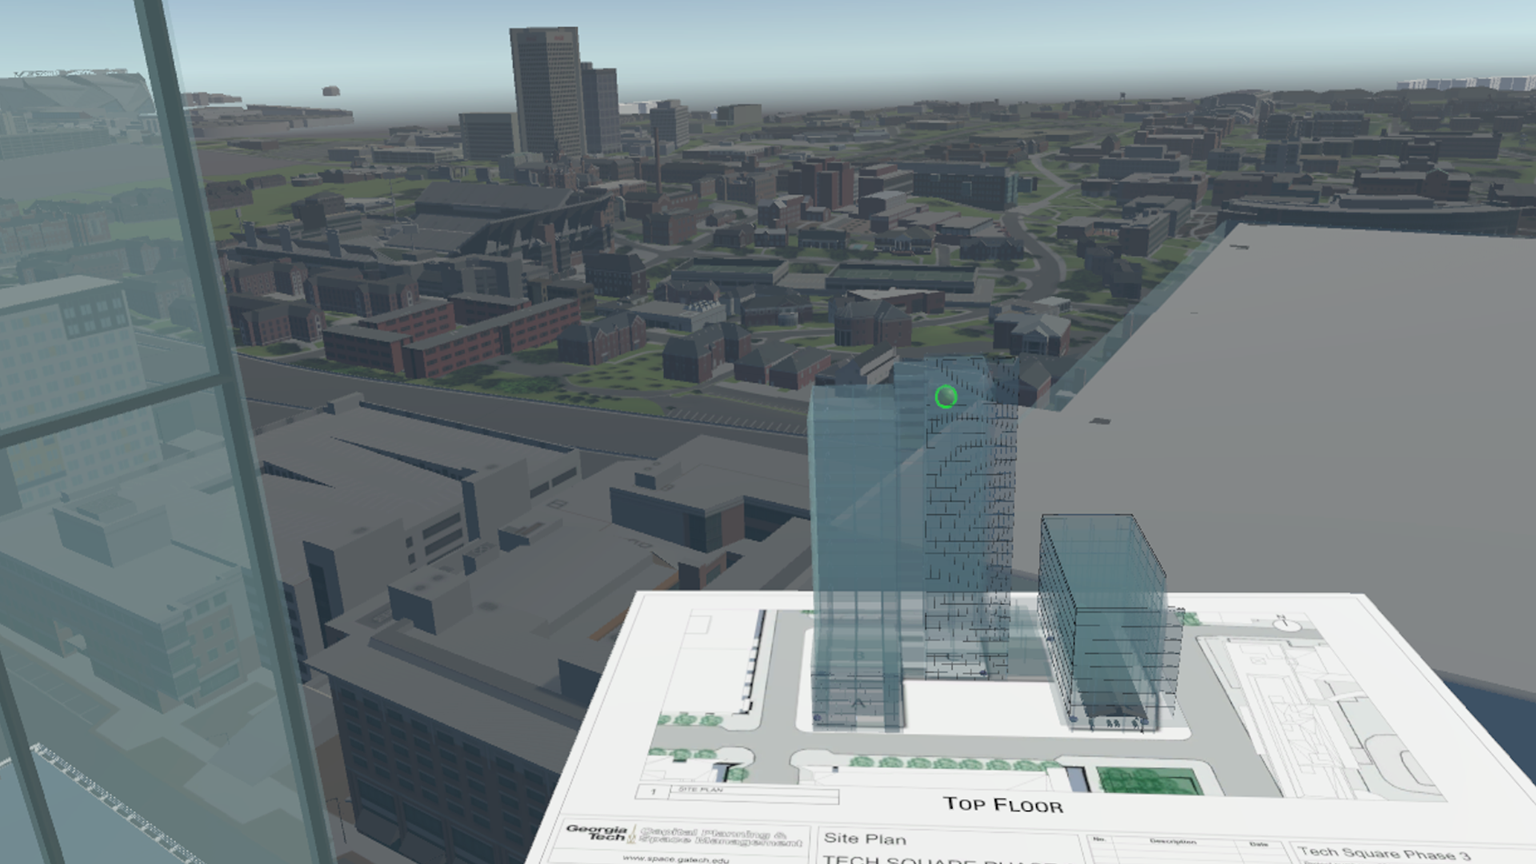 3D models of the Georgia Tech Campus